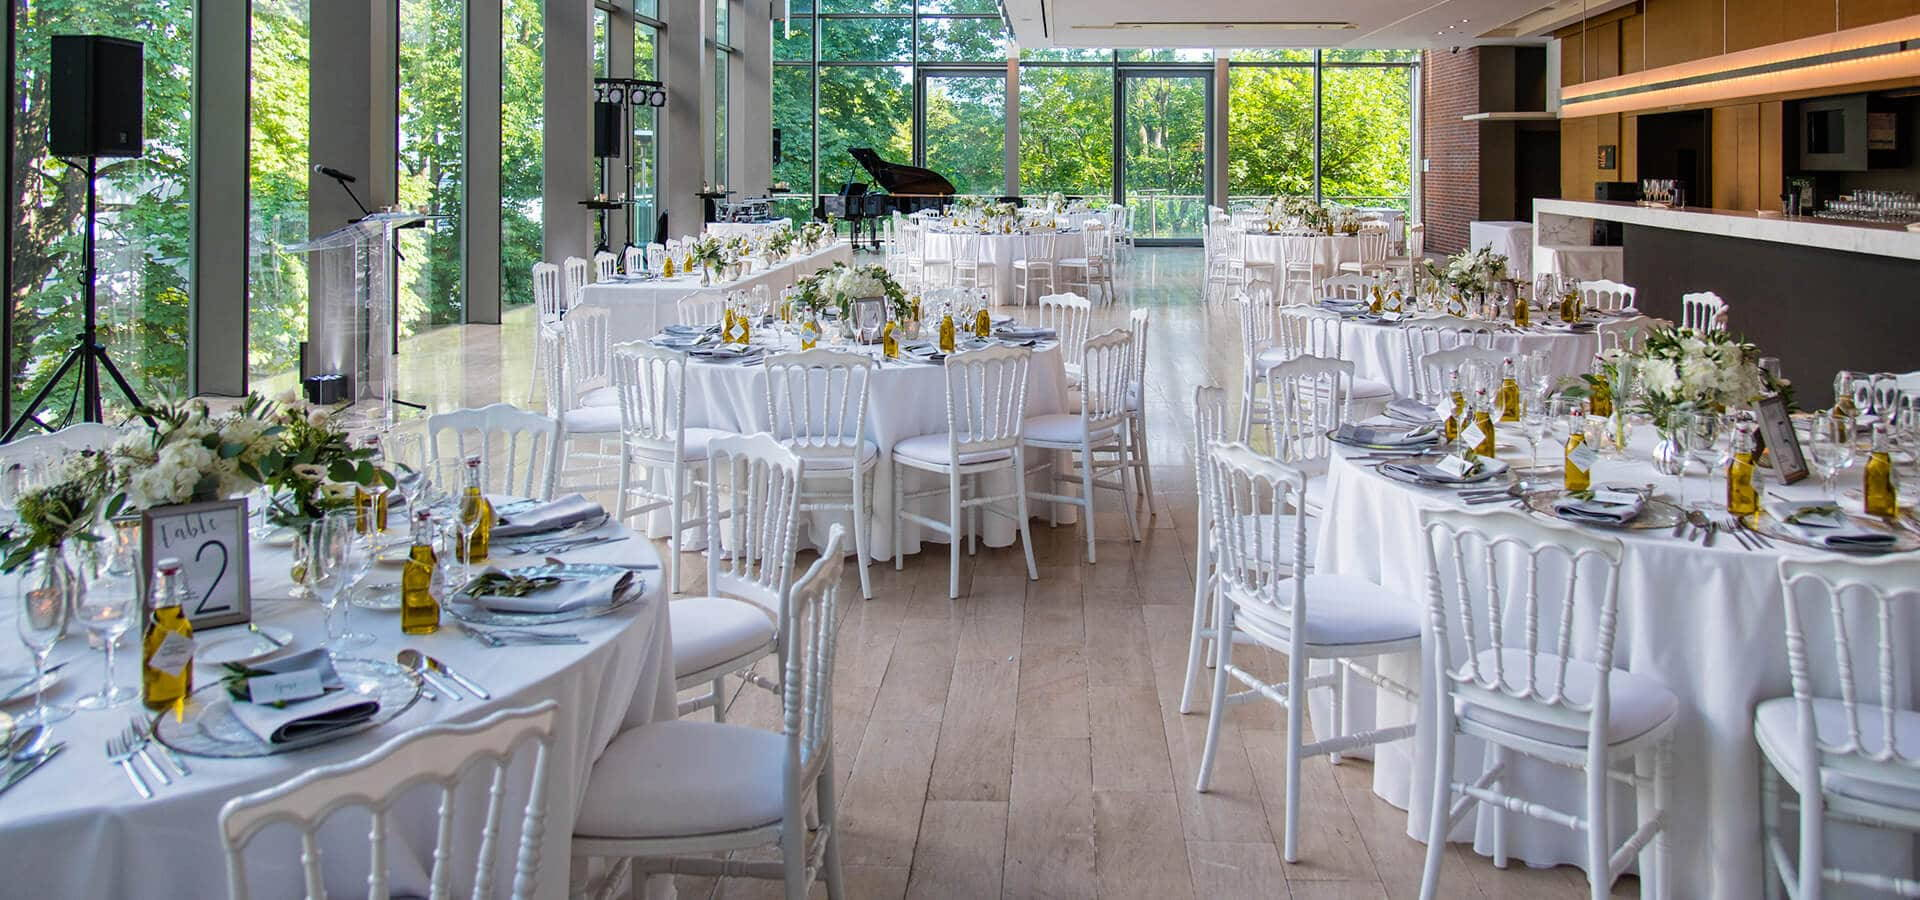 Hero image for Nadia and Jeff's Garden Wedding at The Royal Conservatory